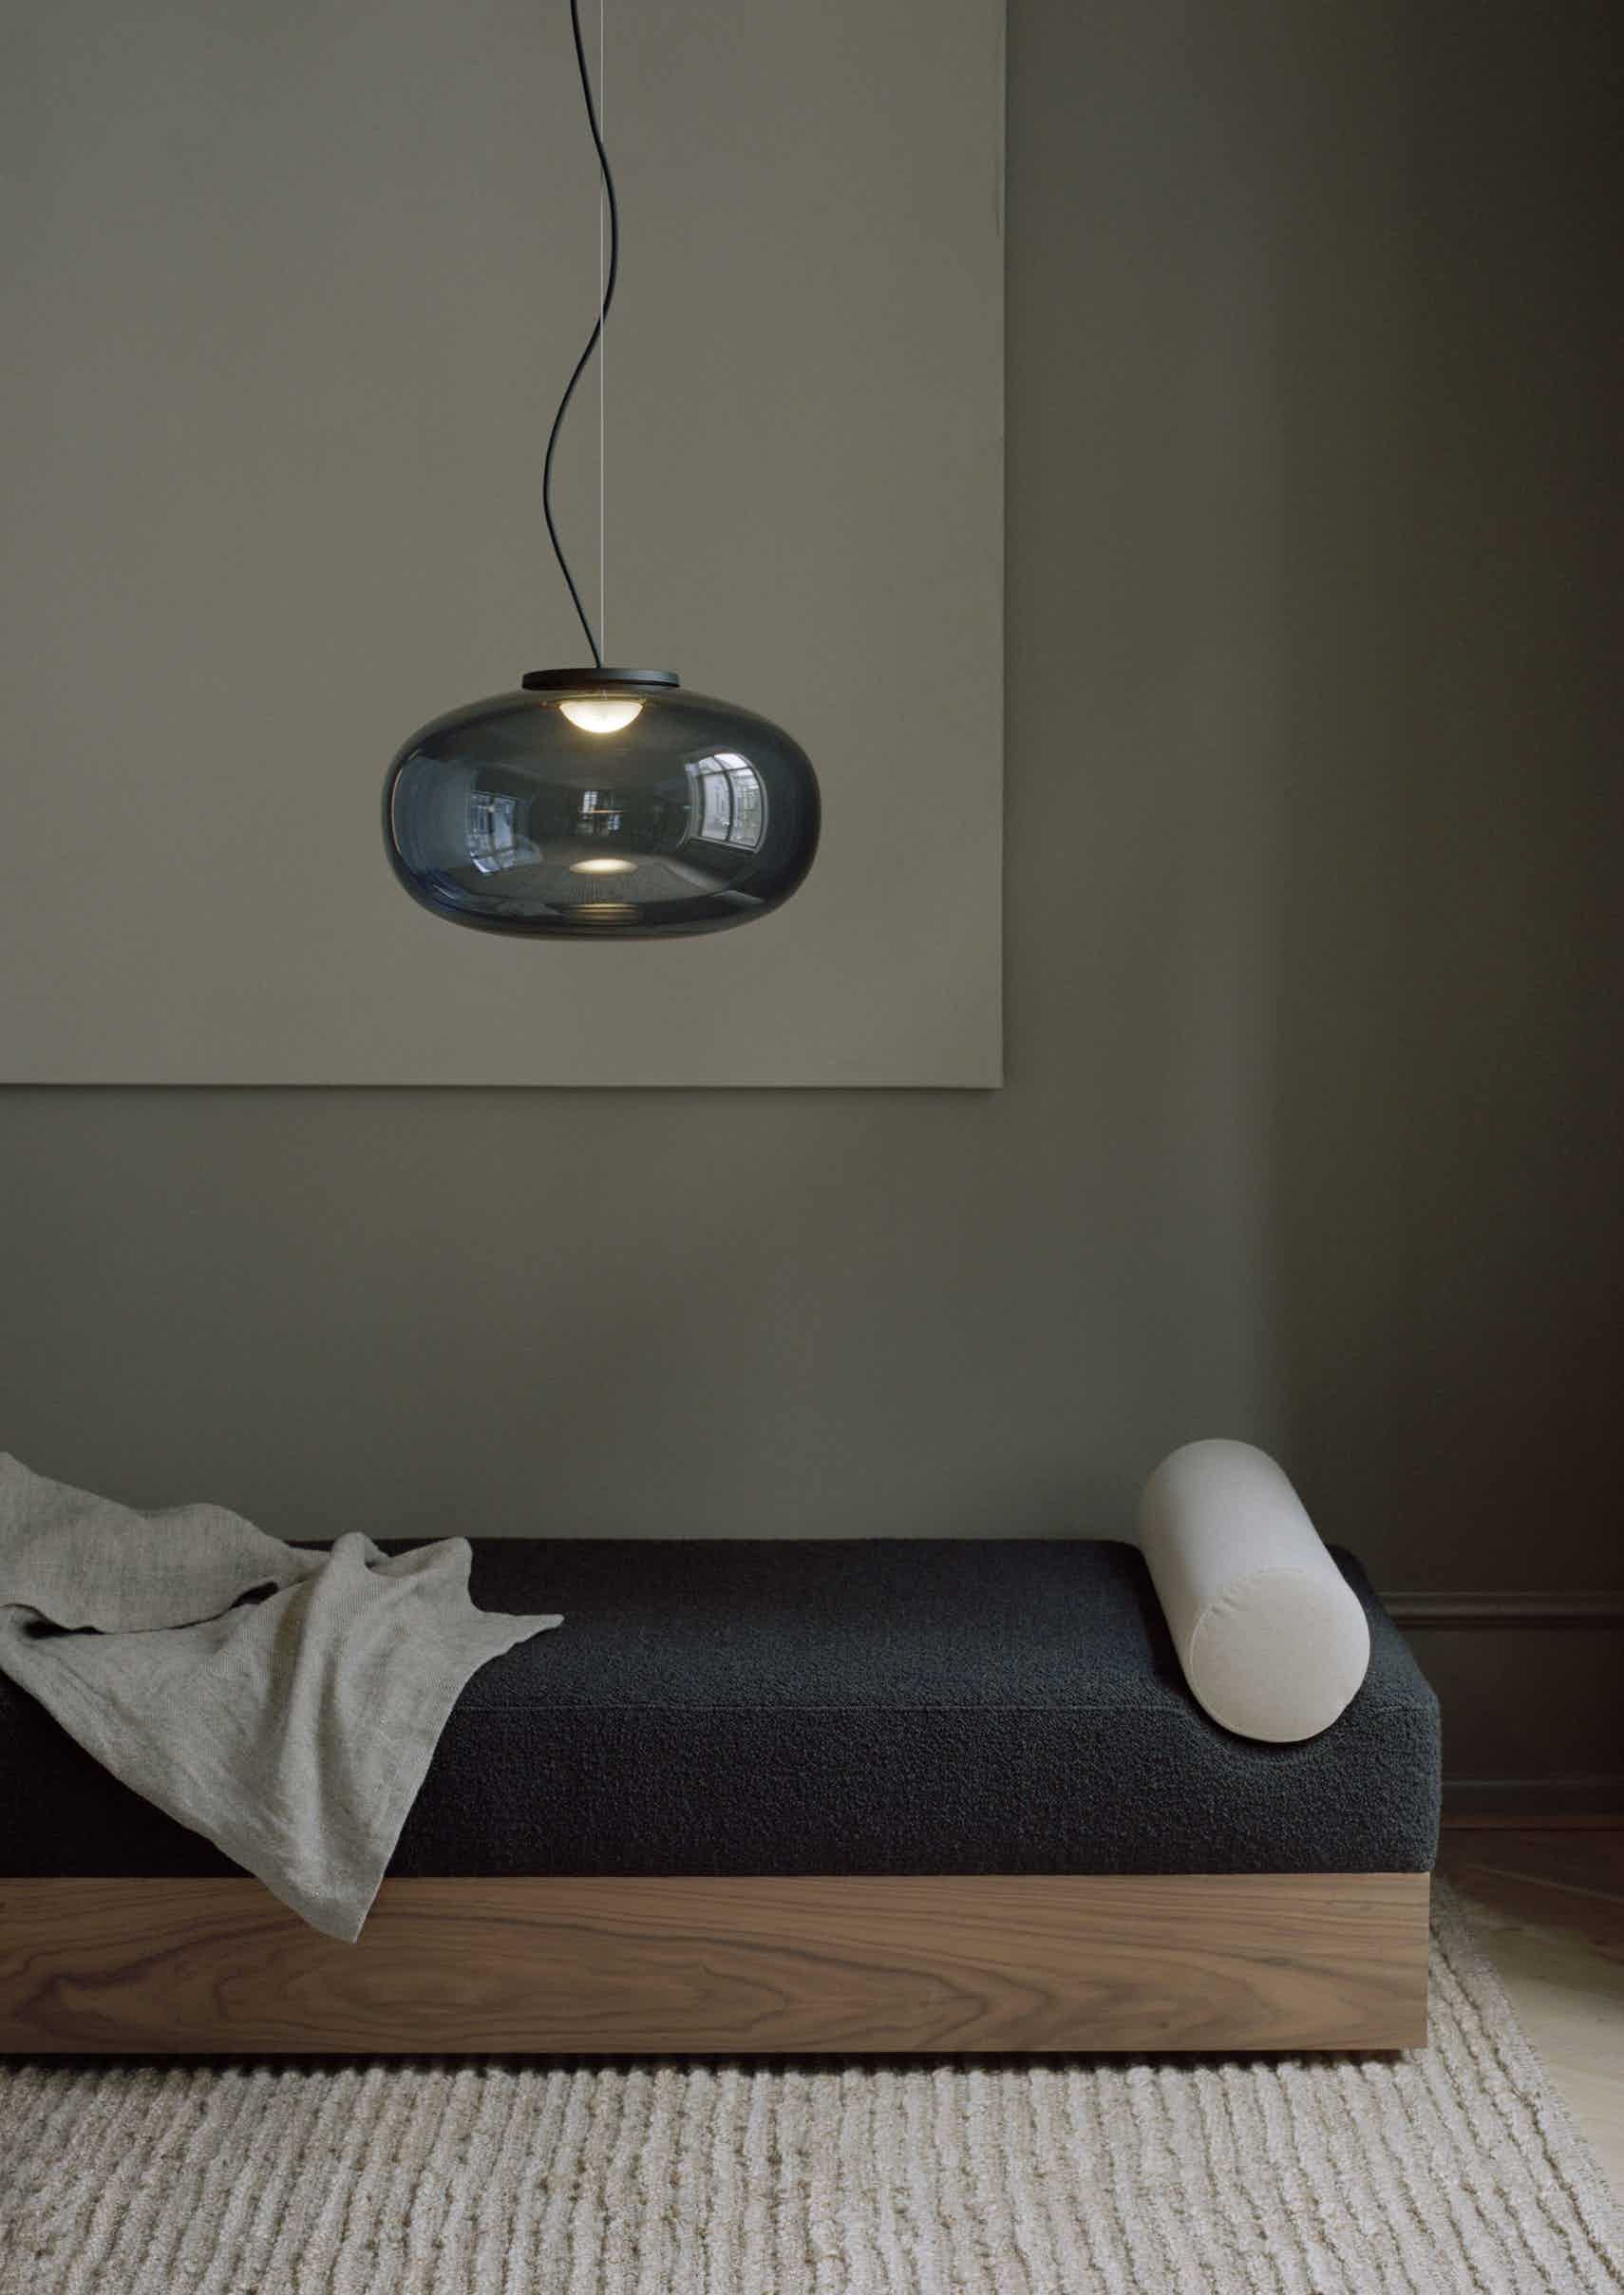 New works furniture karl johan pendant lamp insitu haute living